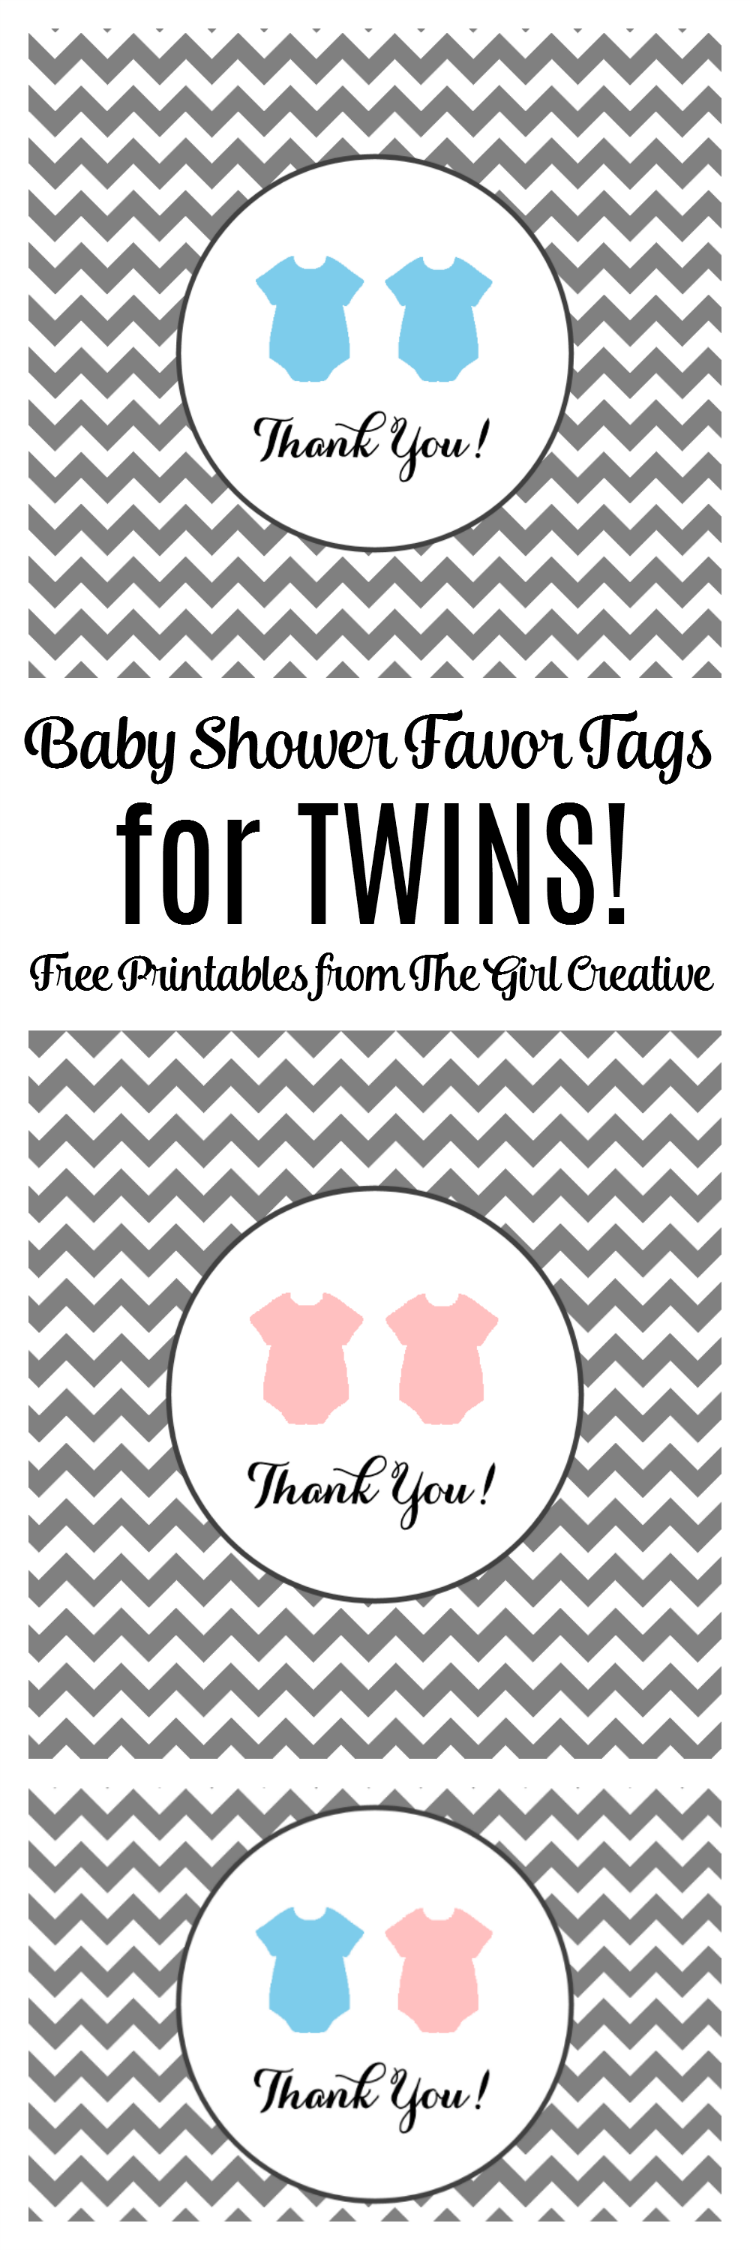 Baby Shower Favor Tags for TWINS